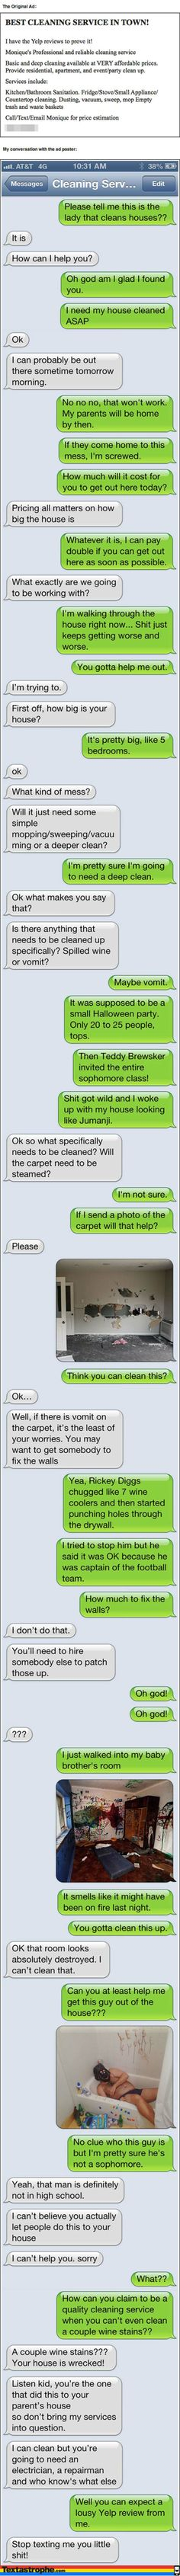 The 5 Most Epic Text Pranks Of All Time